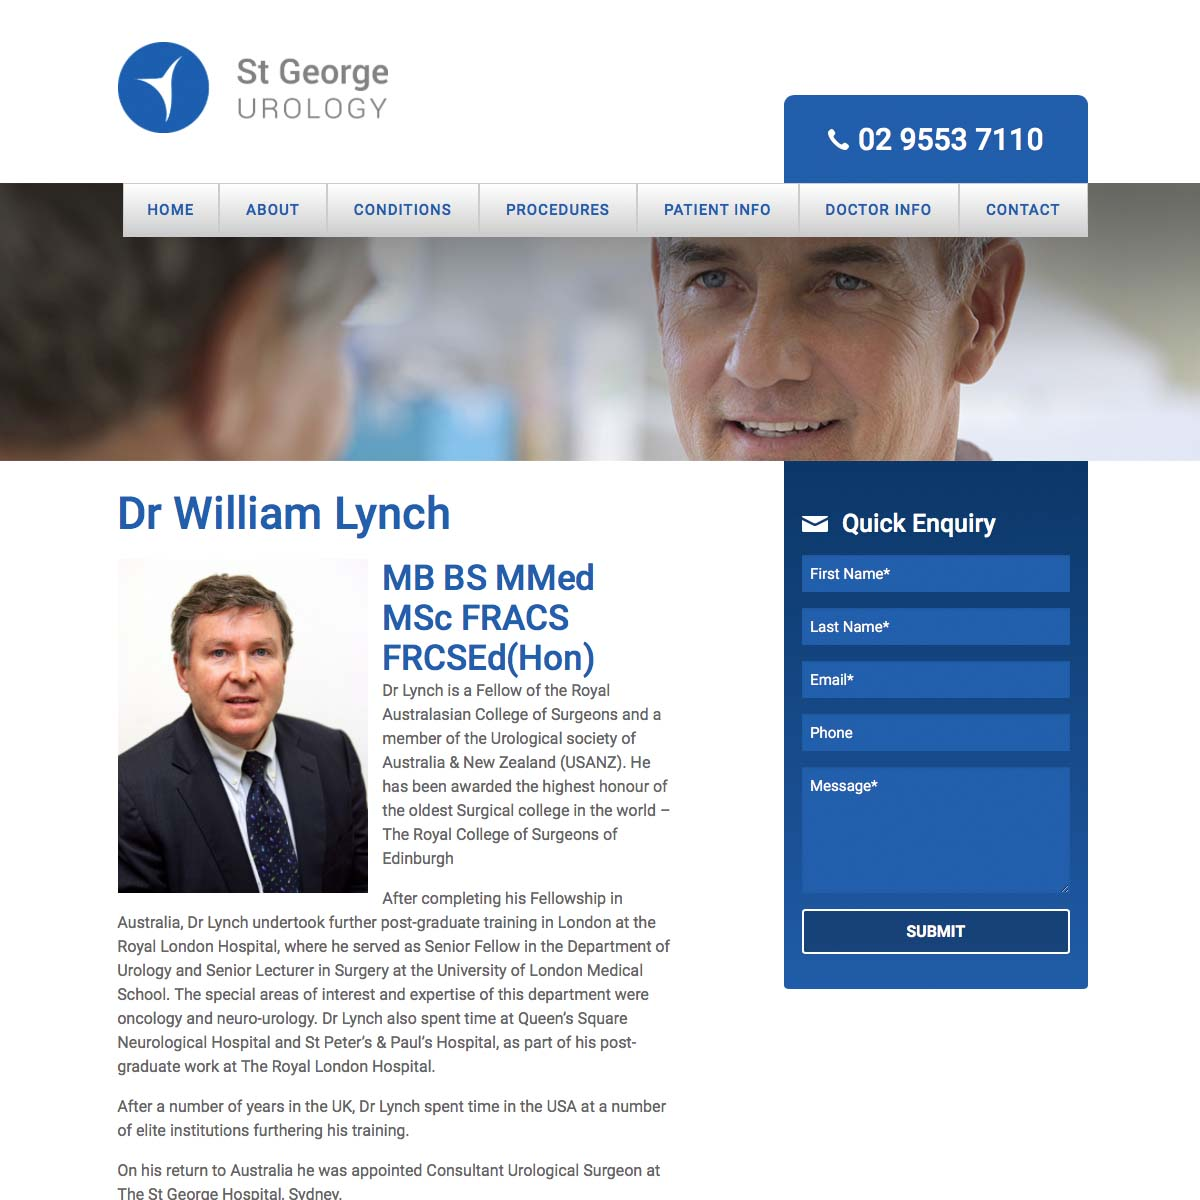 St George Urology Doctor